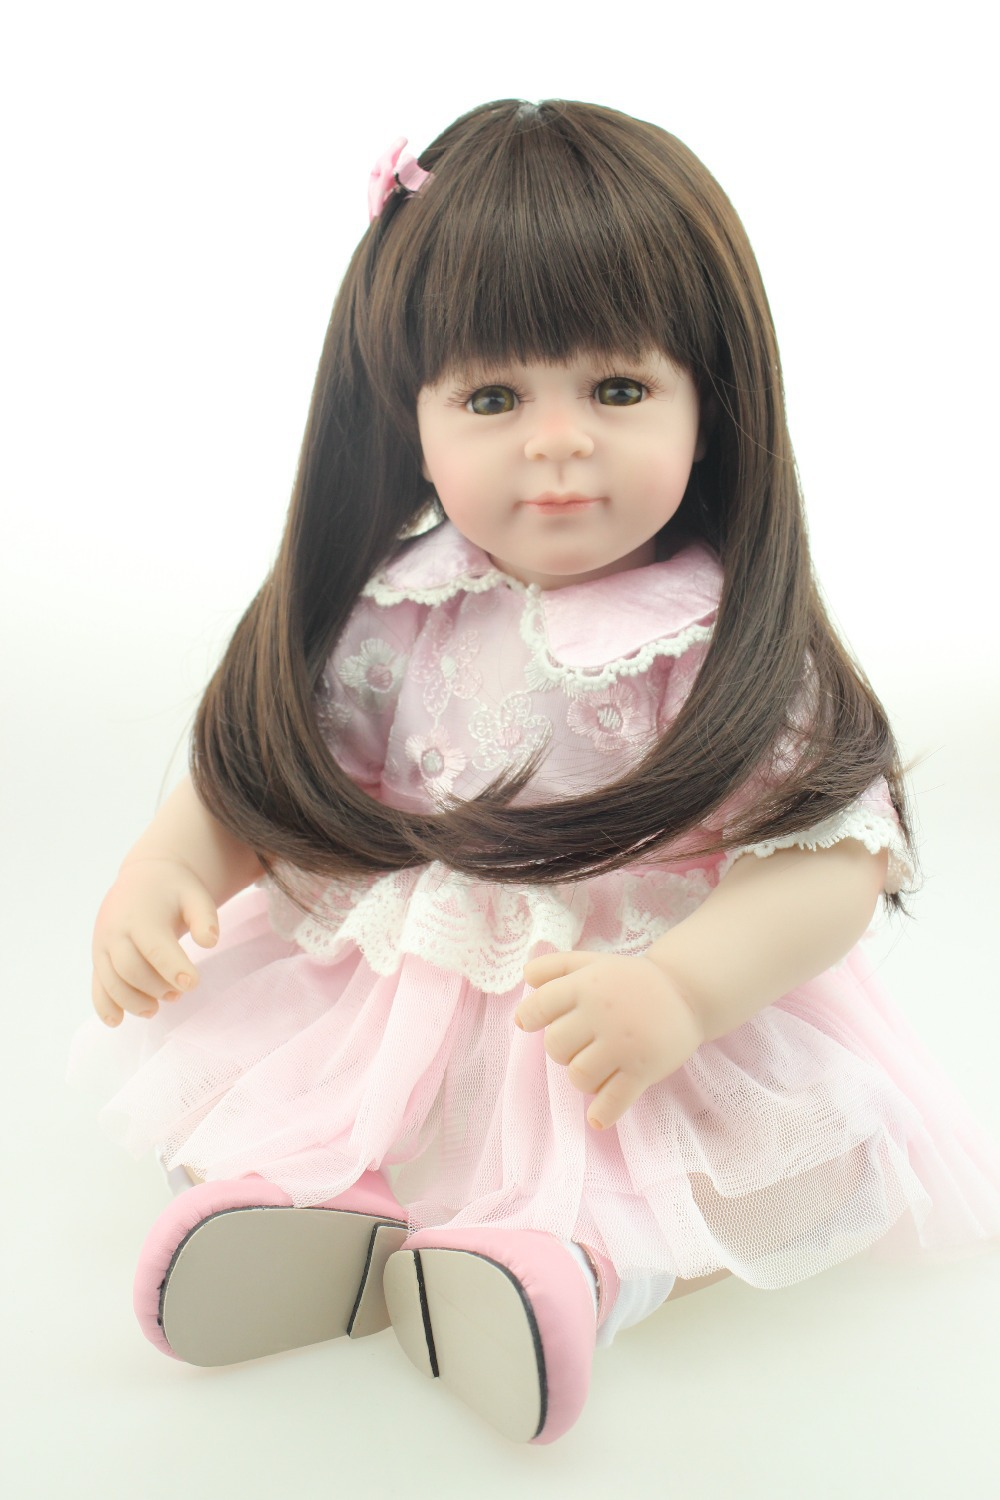 ФОТО 2015 NEW hot sale lifelike reborn todder baby doll  fashion doll Christmas gift and birthday gifts